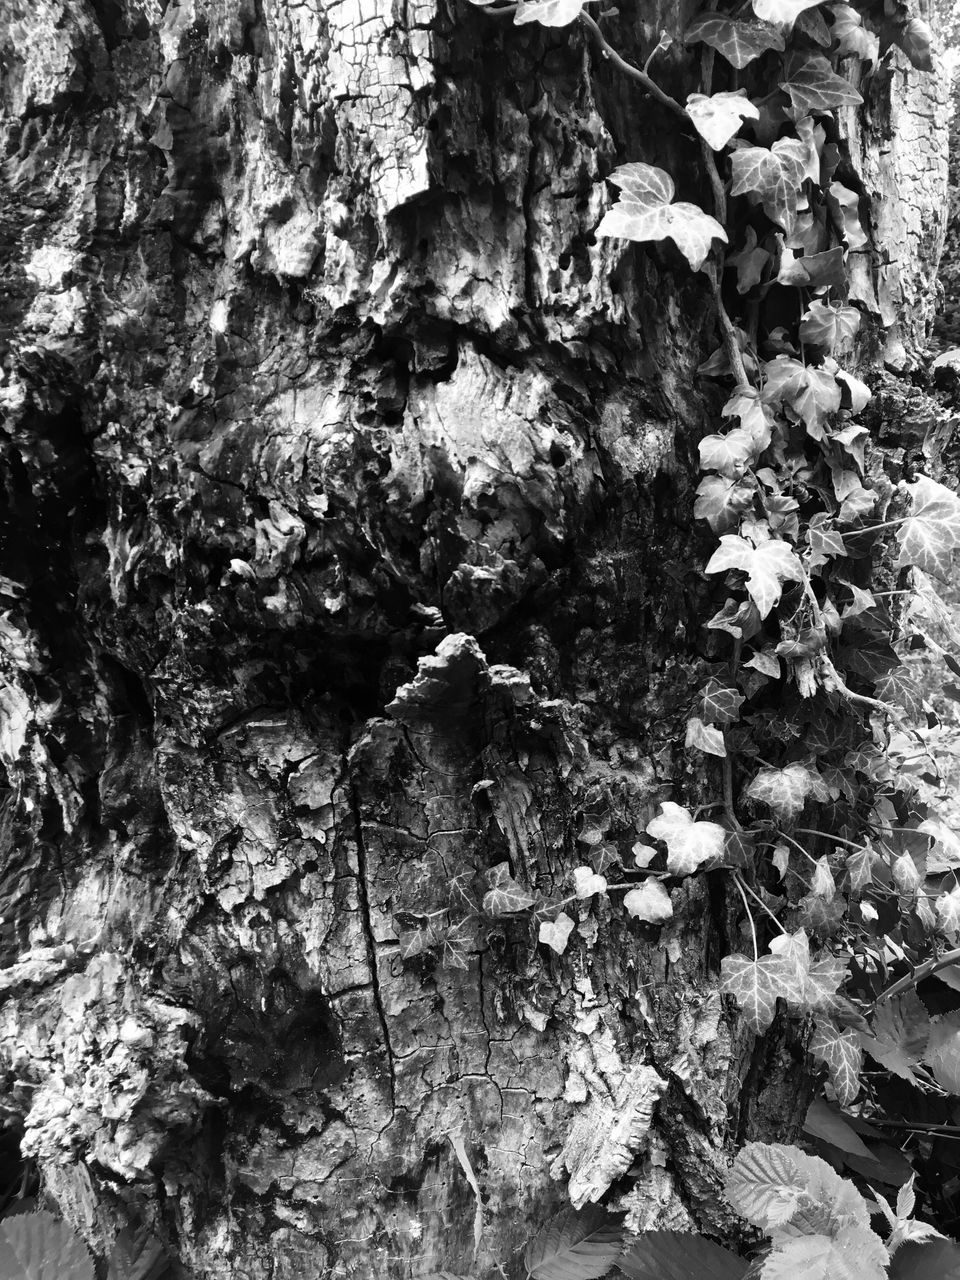 tree trunk, growth, nature, textured, bark, plant, no people, backgrounds, full frame, day, tree, ivy, leaf, outdoors, close-up, fragility, lichen, beauty in nature, fungus, flower